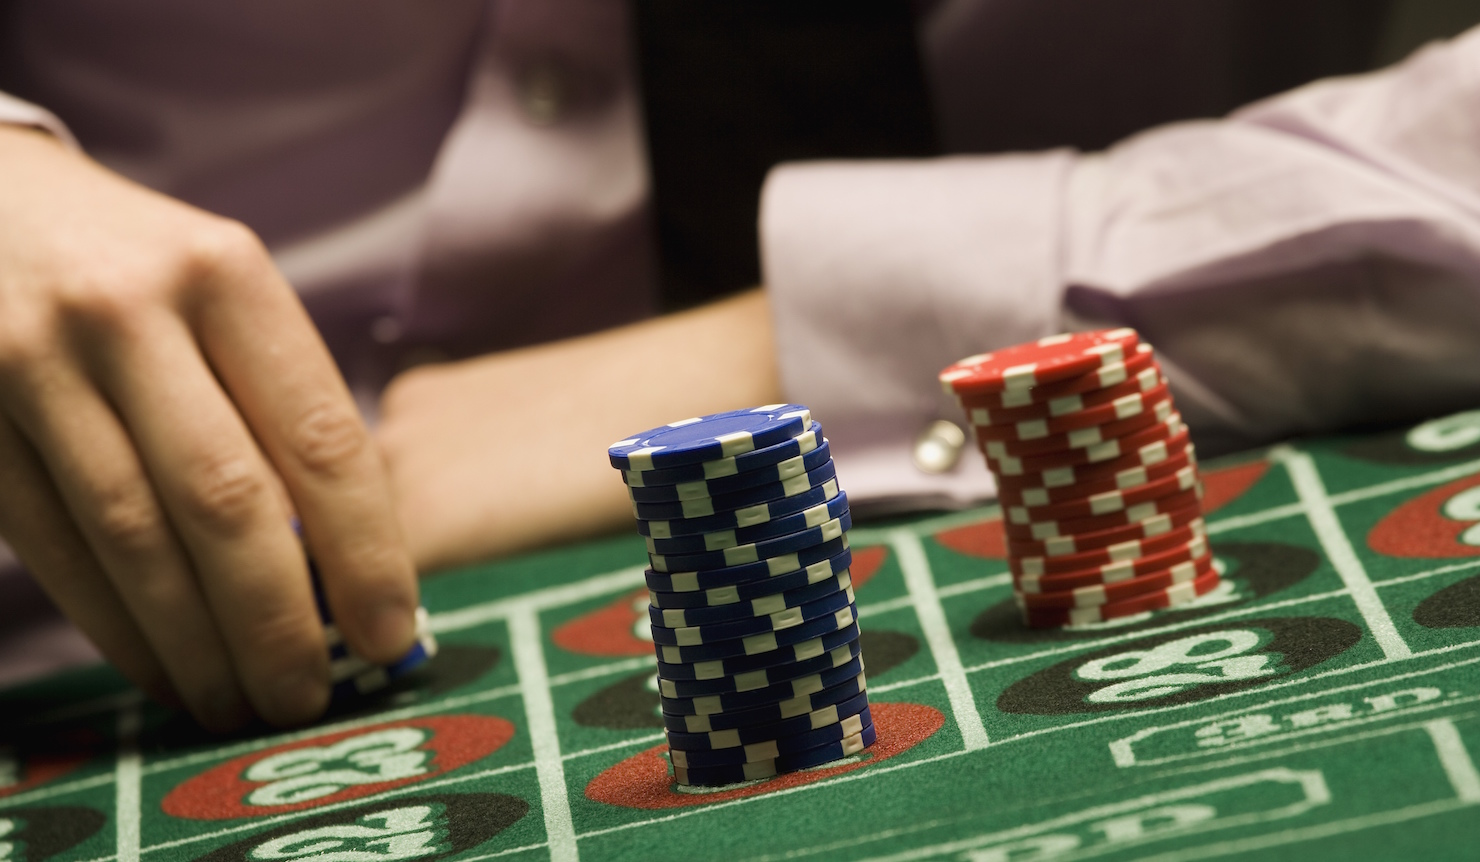 Pennsylvania Regulators Make Problem Gambling Awareness Push